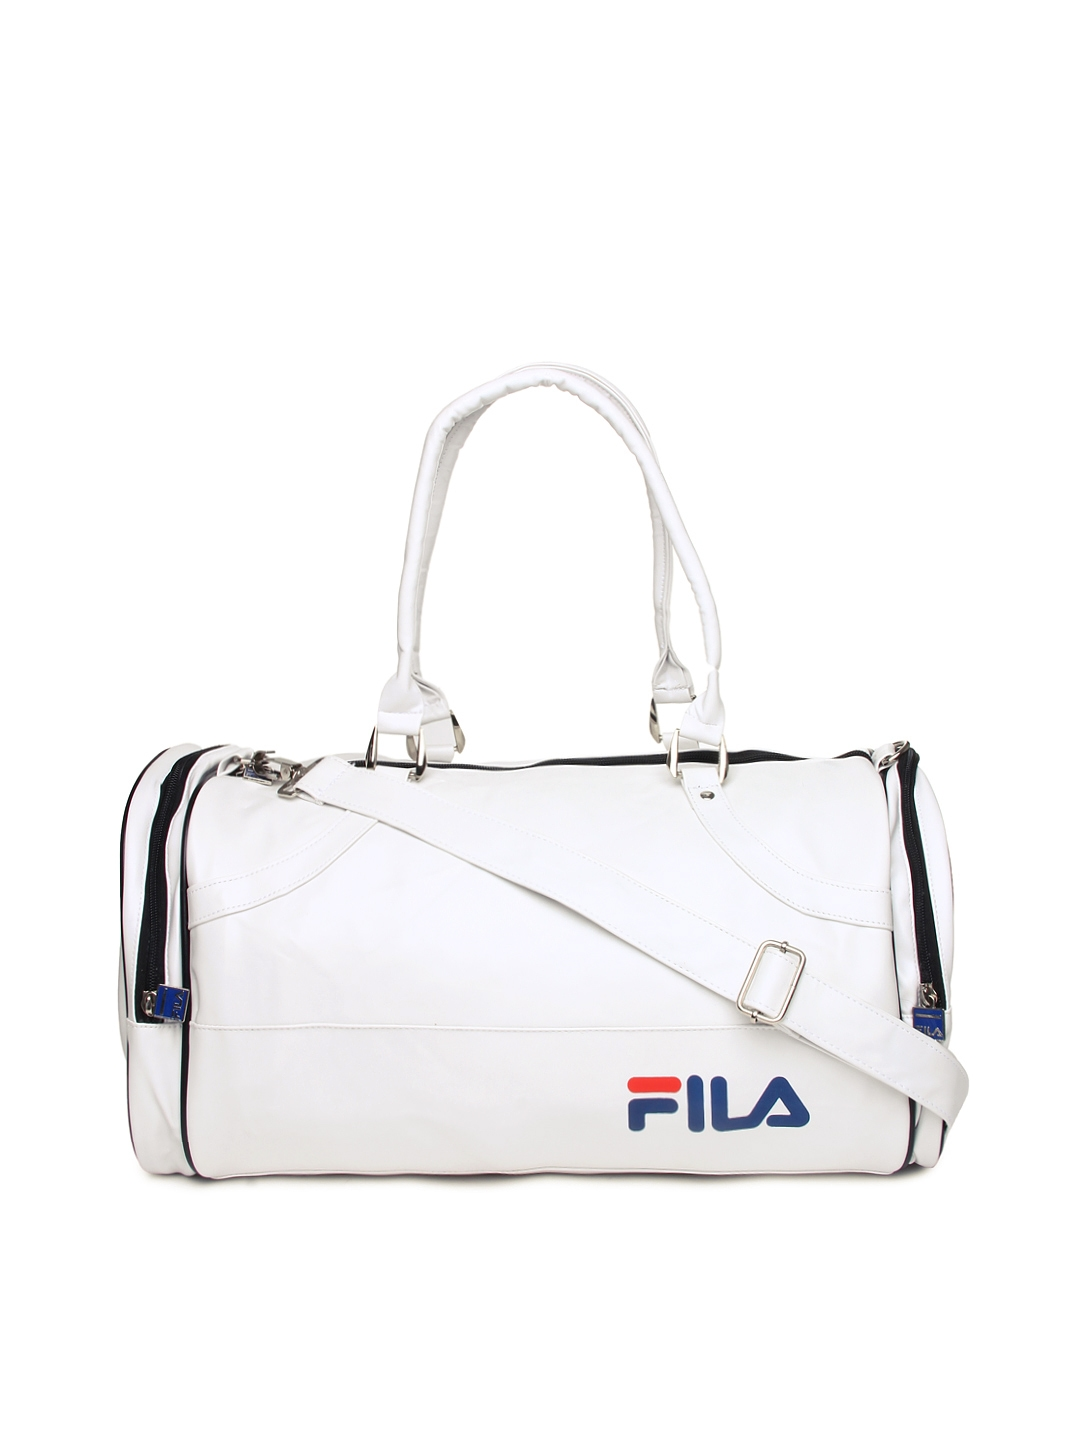 Buy Fila Unisex White Duffle Bag - Duffel Bag for Unisex 435850 | Myntra